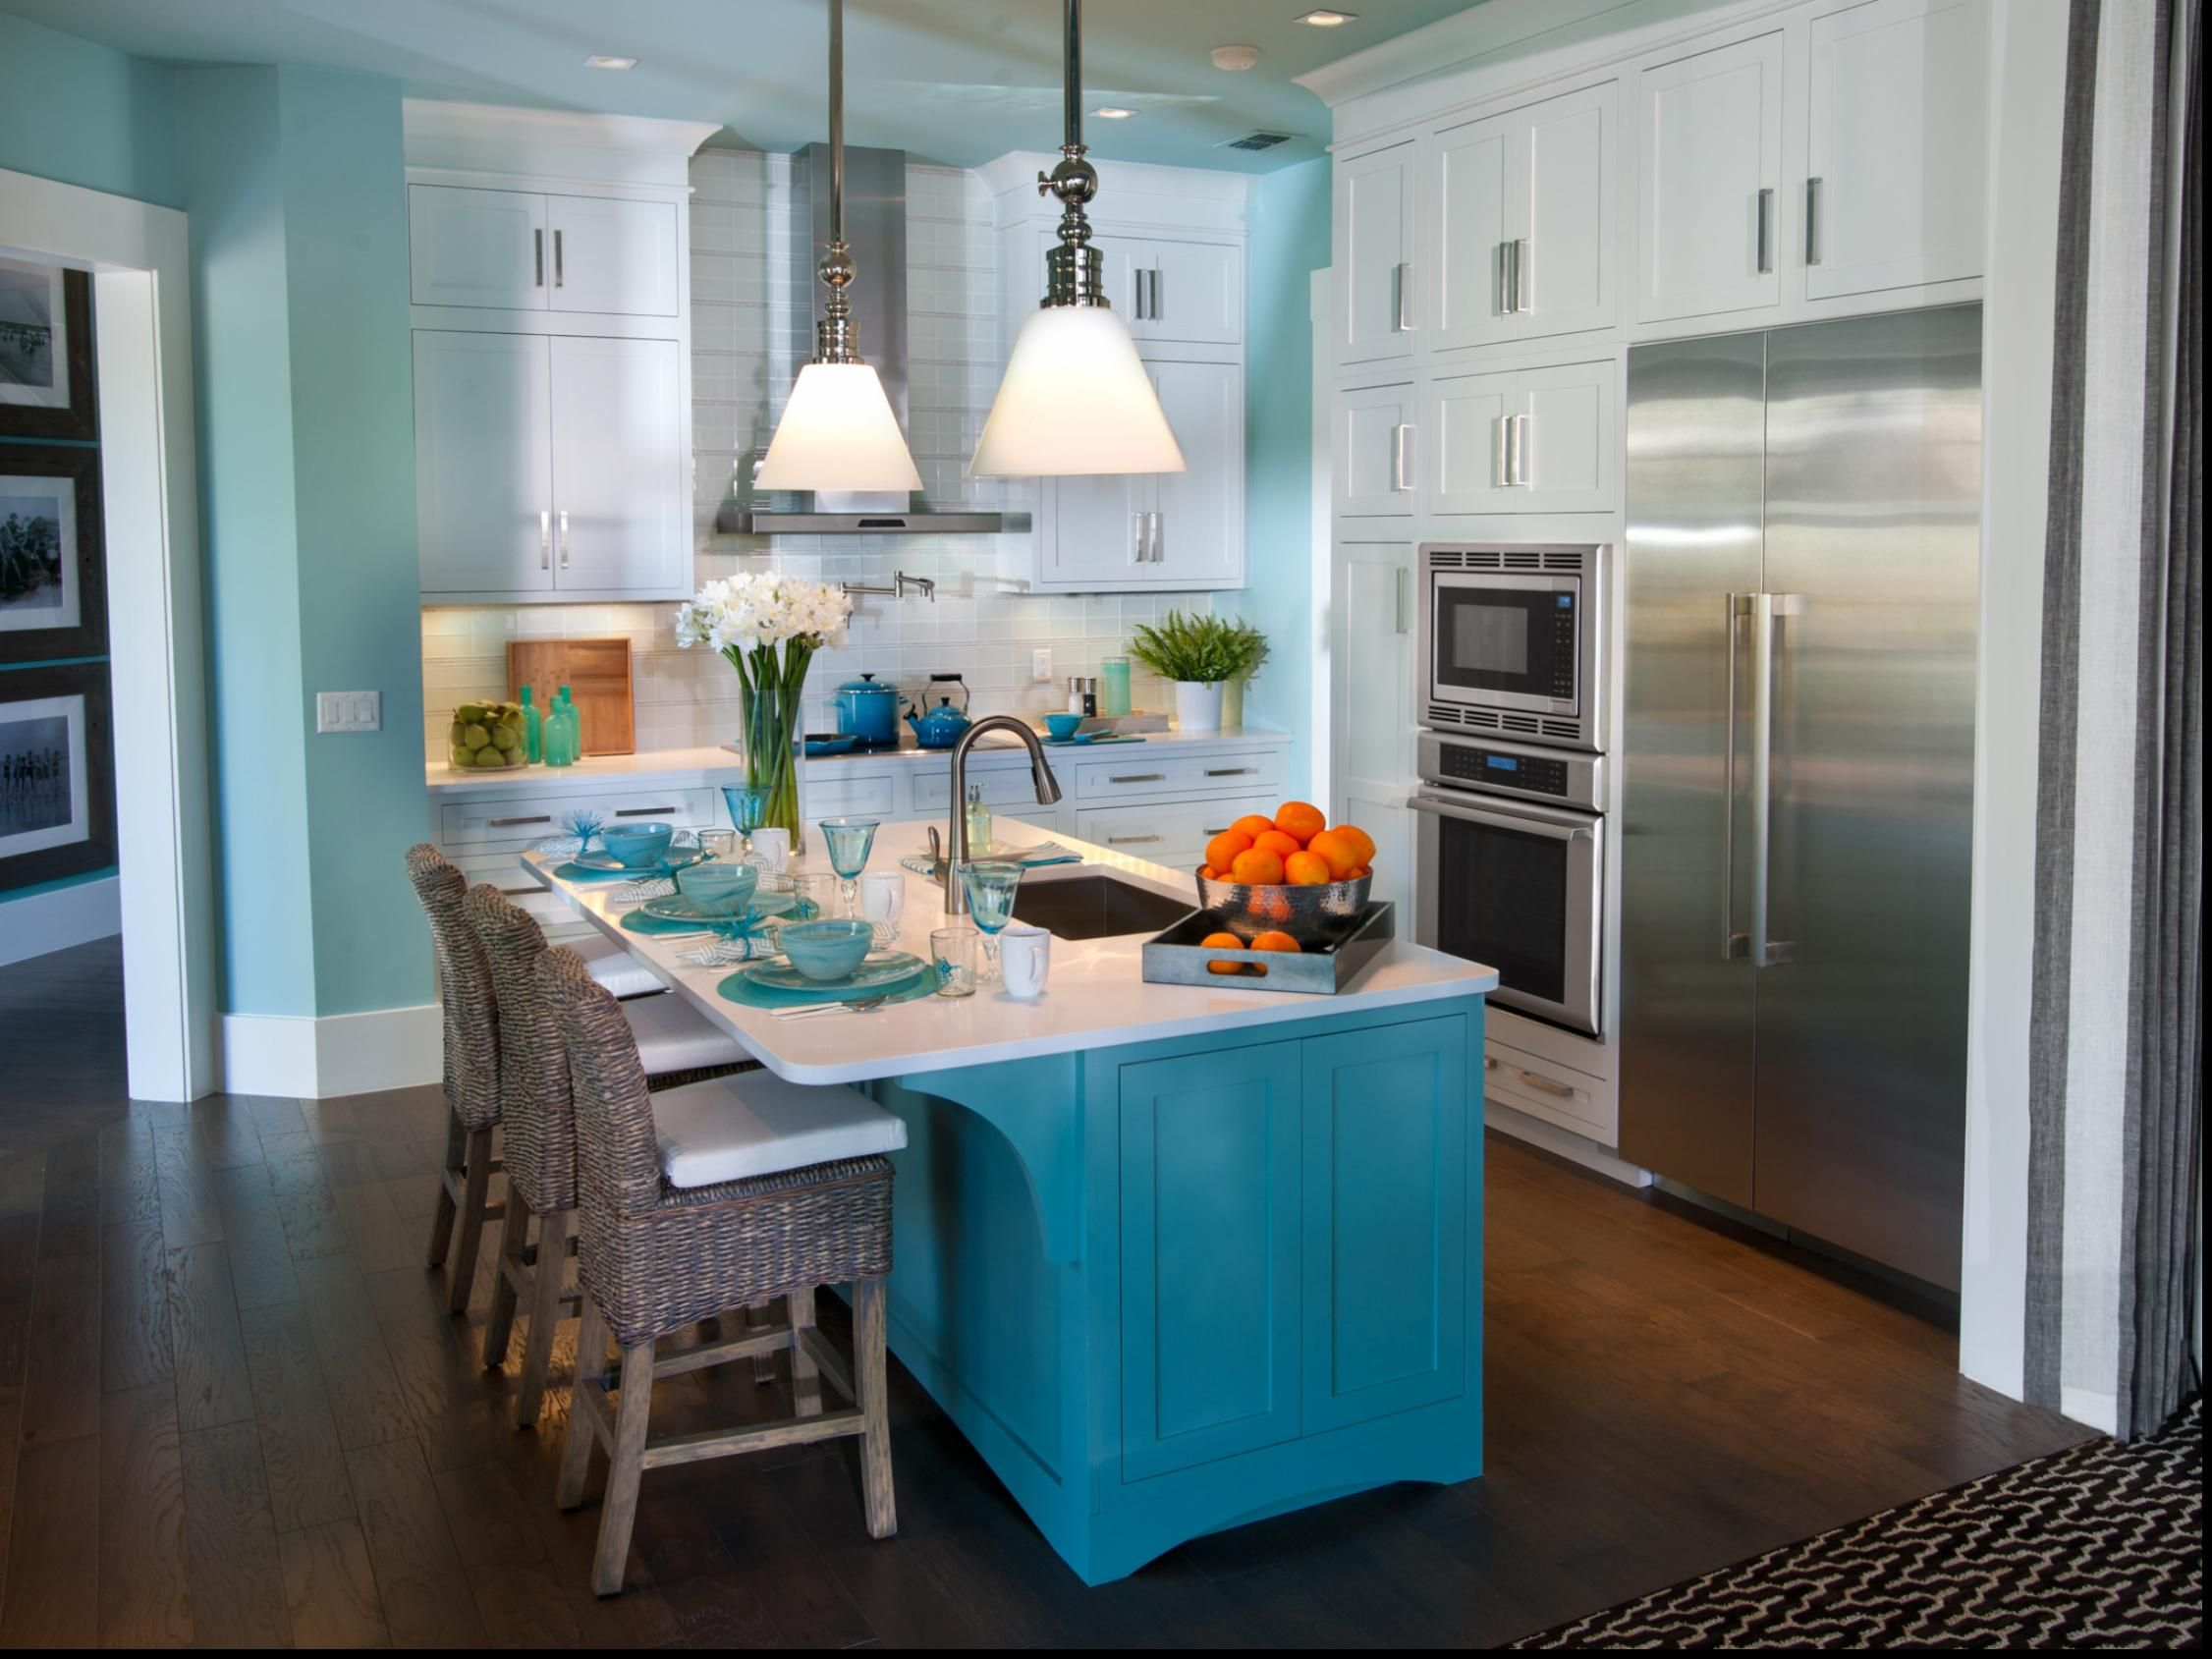 hgtv-kitchen-decorating-ideas-tagged-with-One-wall-kitchen-with ...